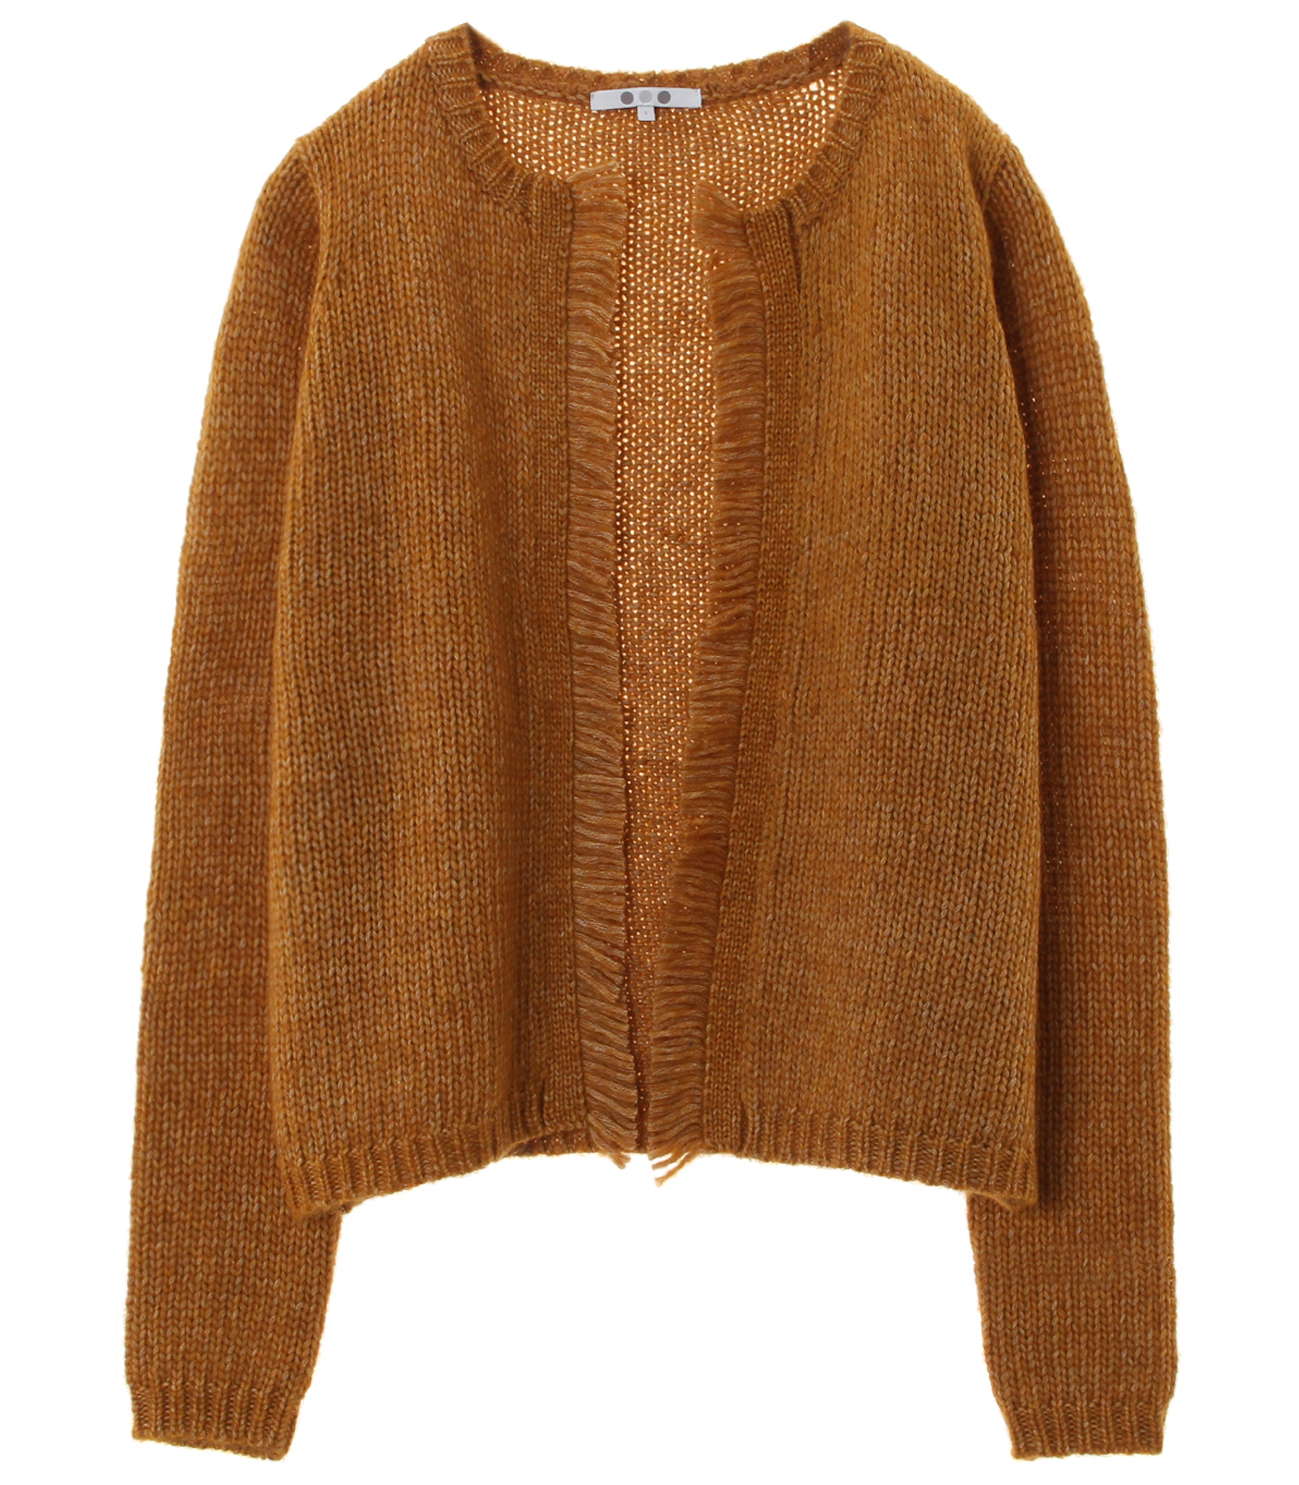 tweedy sweater l/s cardigan 詳細画像 yellow 1